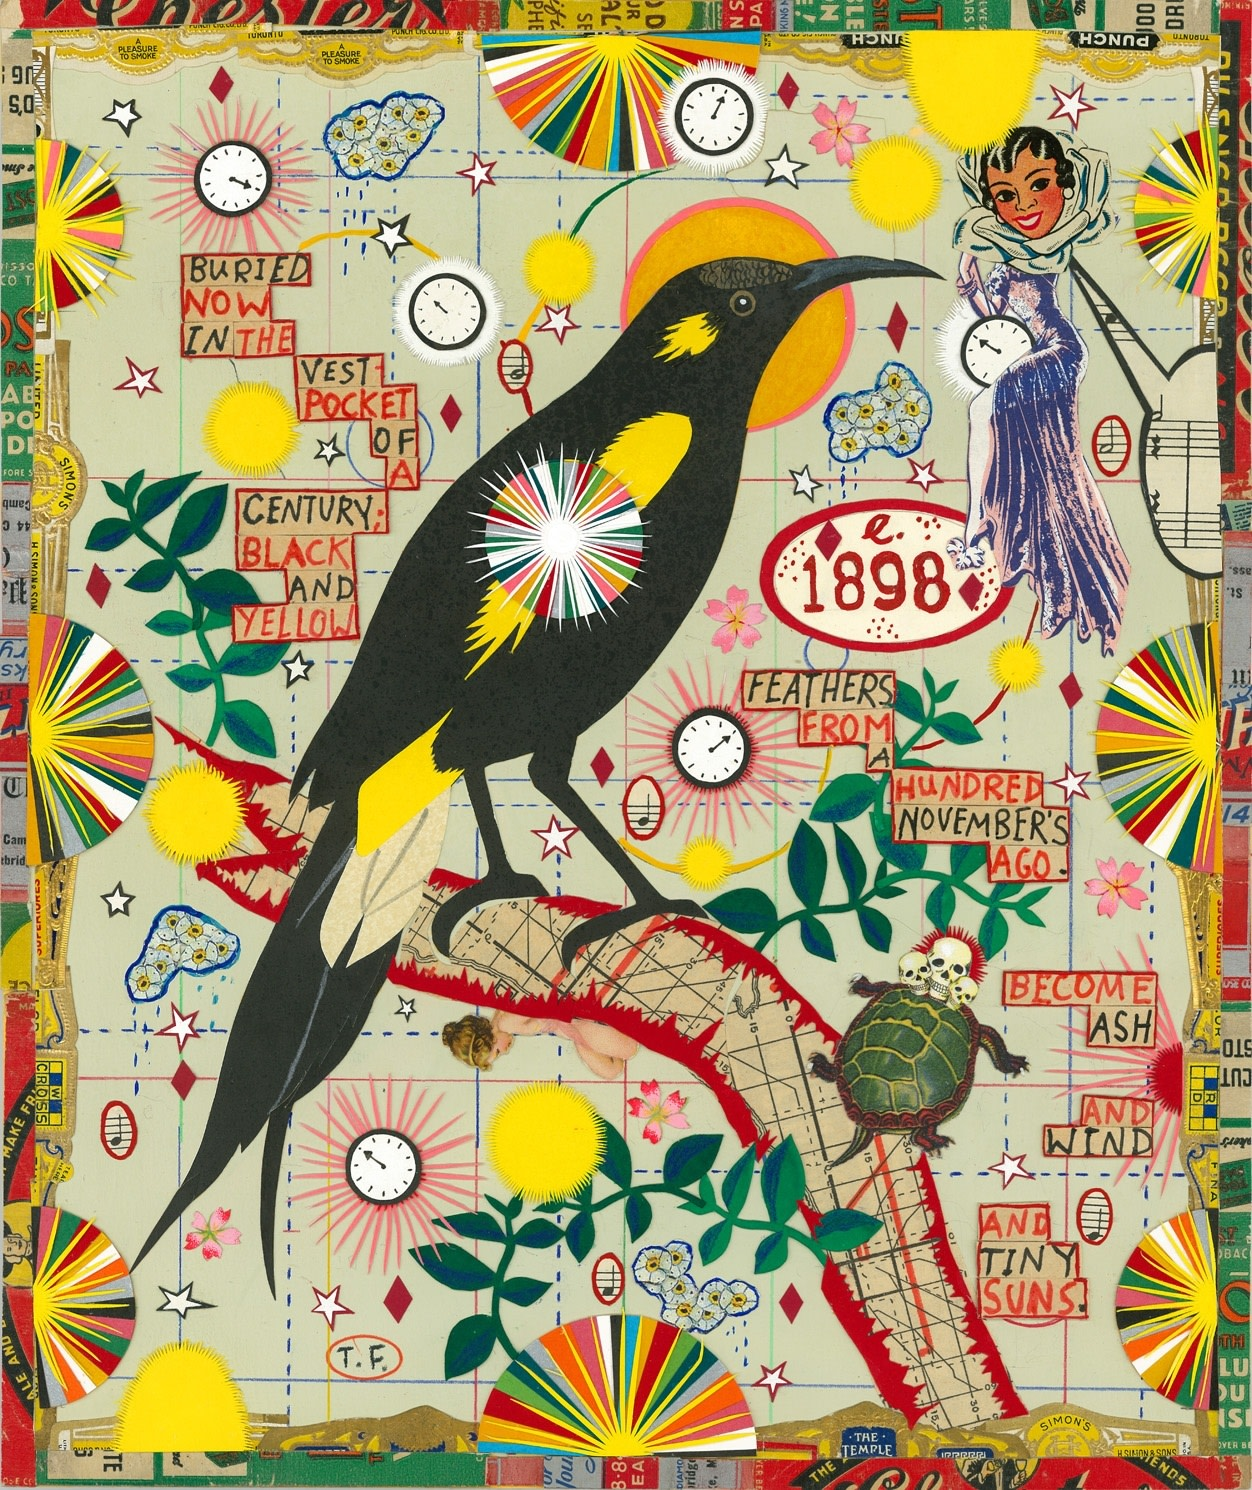 "<span class=""link fancybox-details-link""><a href=""/exhibitions/25/works/image666/"">View Detail Page</a></span><div class=""artist""><strong>Tony Fitzpatrick</strong></div><div class=""title""><em>Bird of the Century</em>, 2016</div><div class=""medium"">Unique Collage</div><div class=""dimensions"">(image) 30.2 x 25.4 cm<br />11 7/8 x 10 in.</div>"